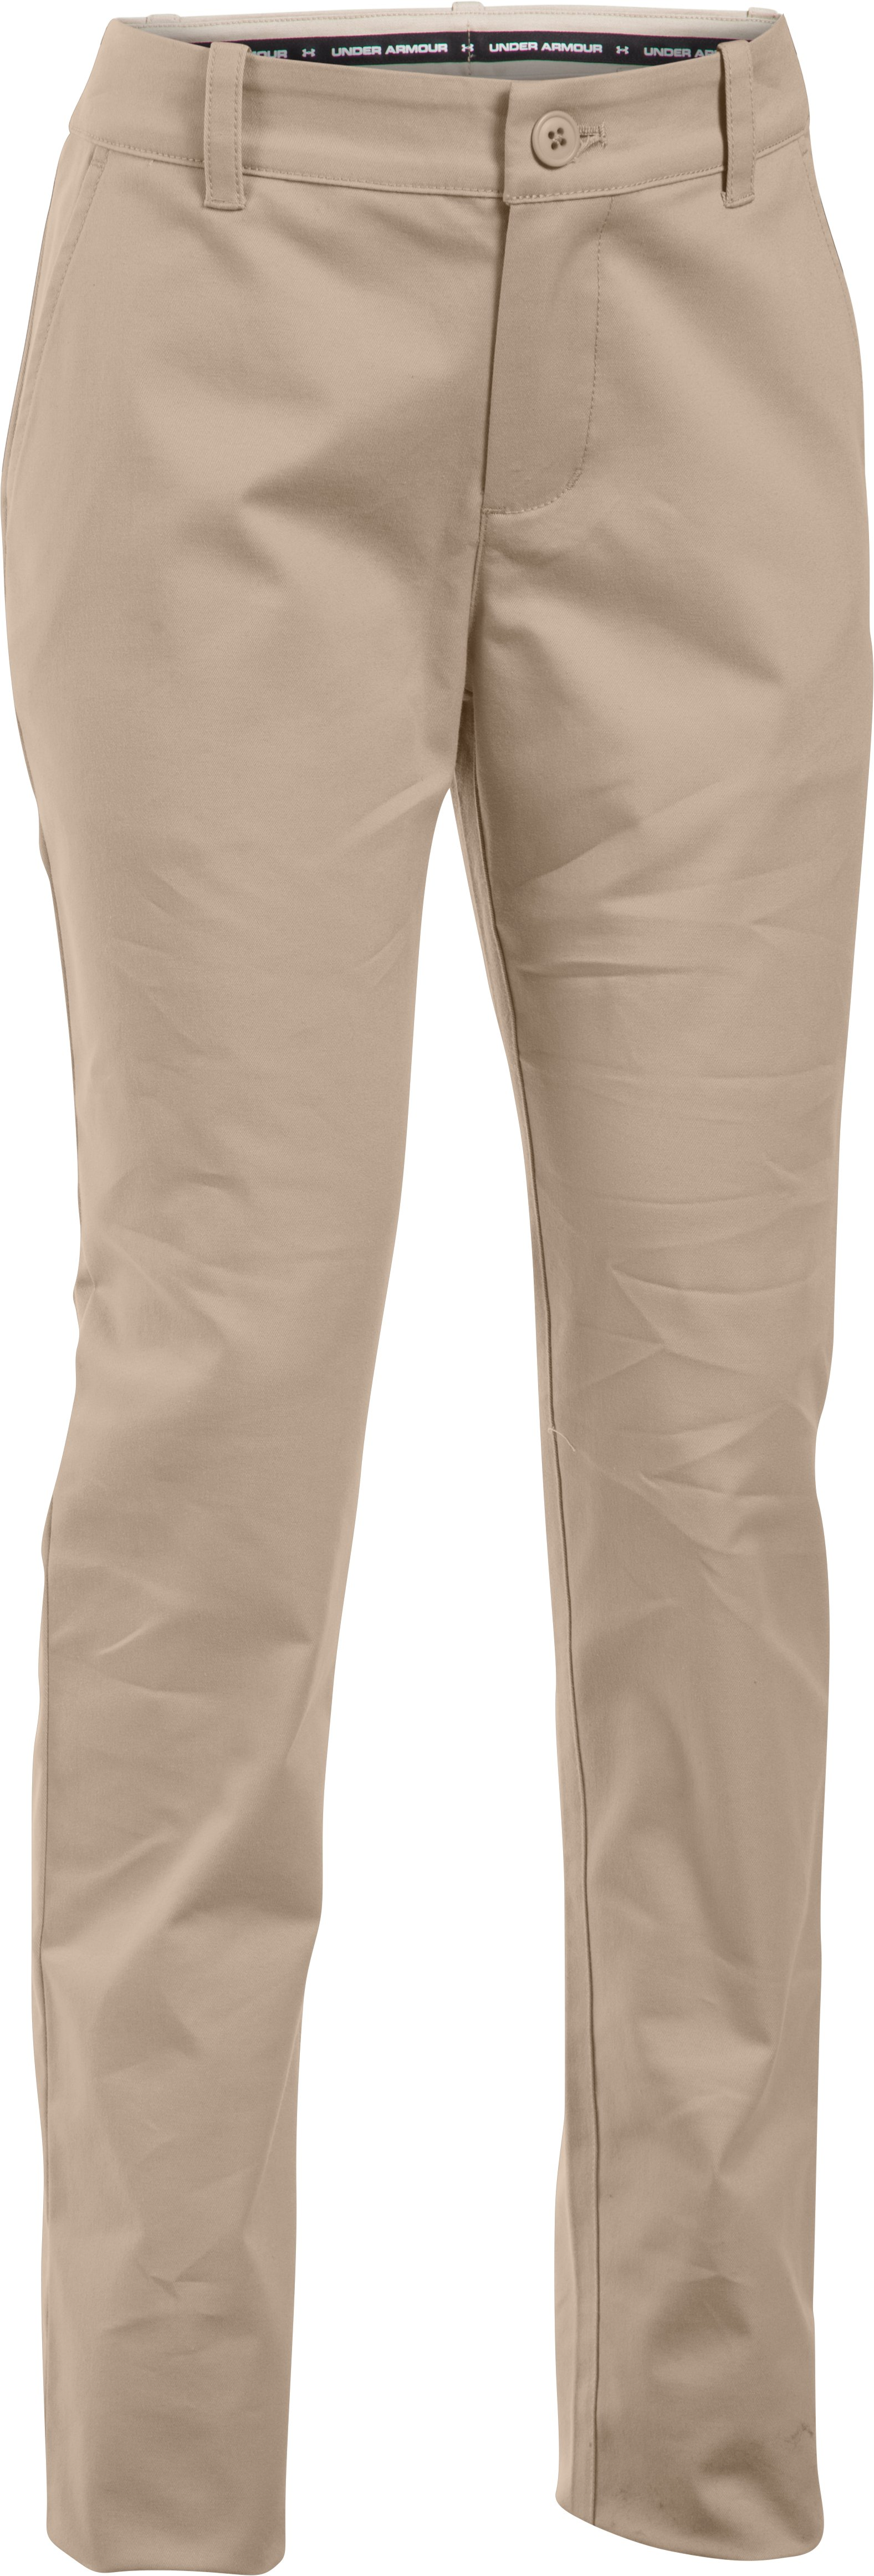 Girls' UA Uniform Chino Pants – Pre-School, Desert Sand,